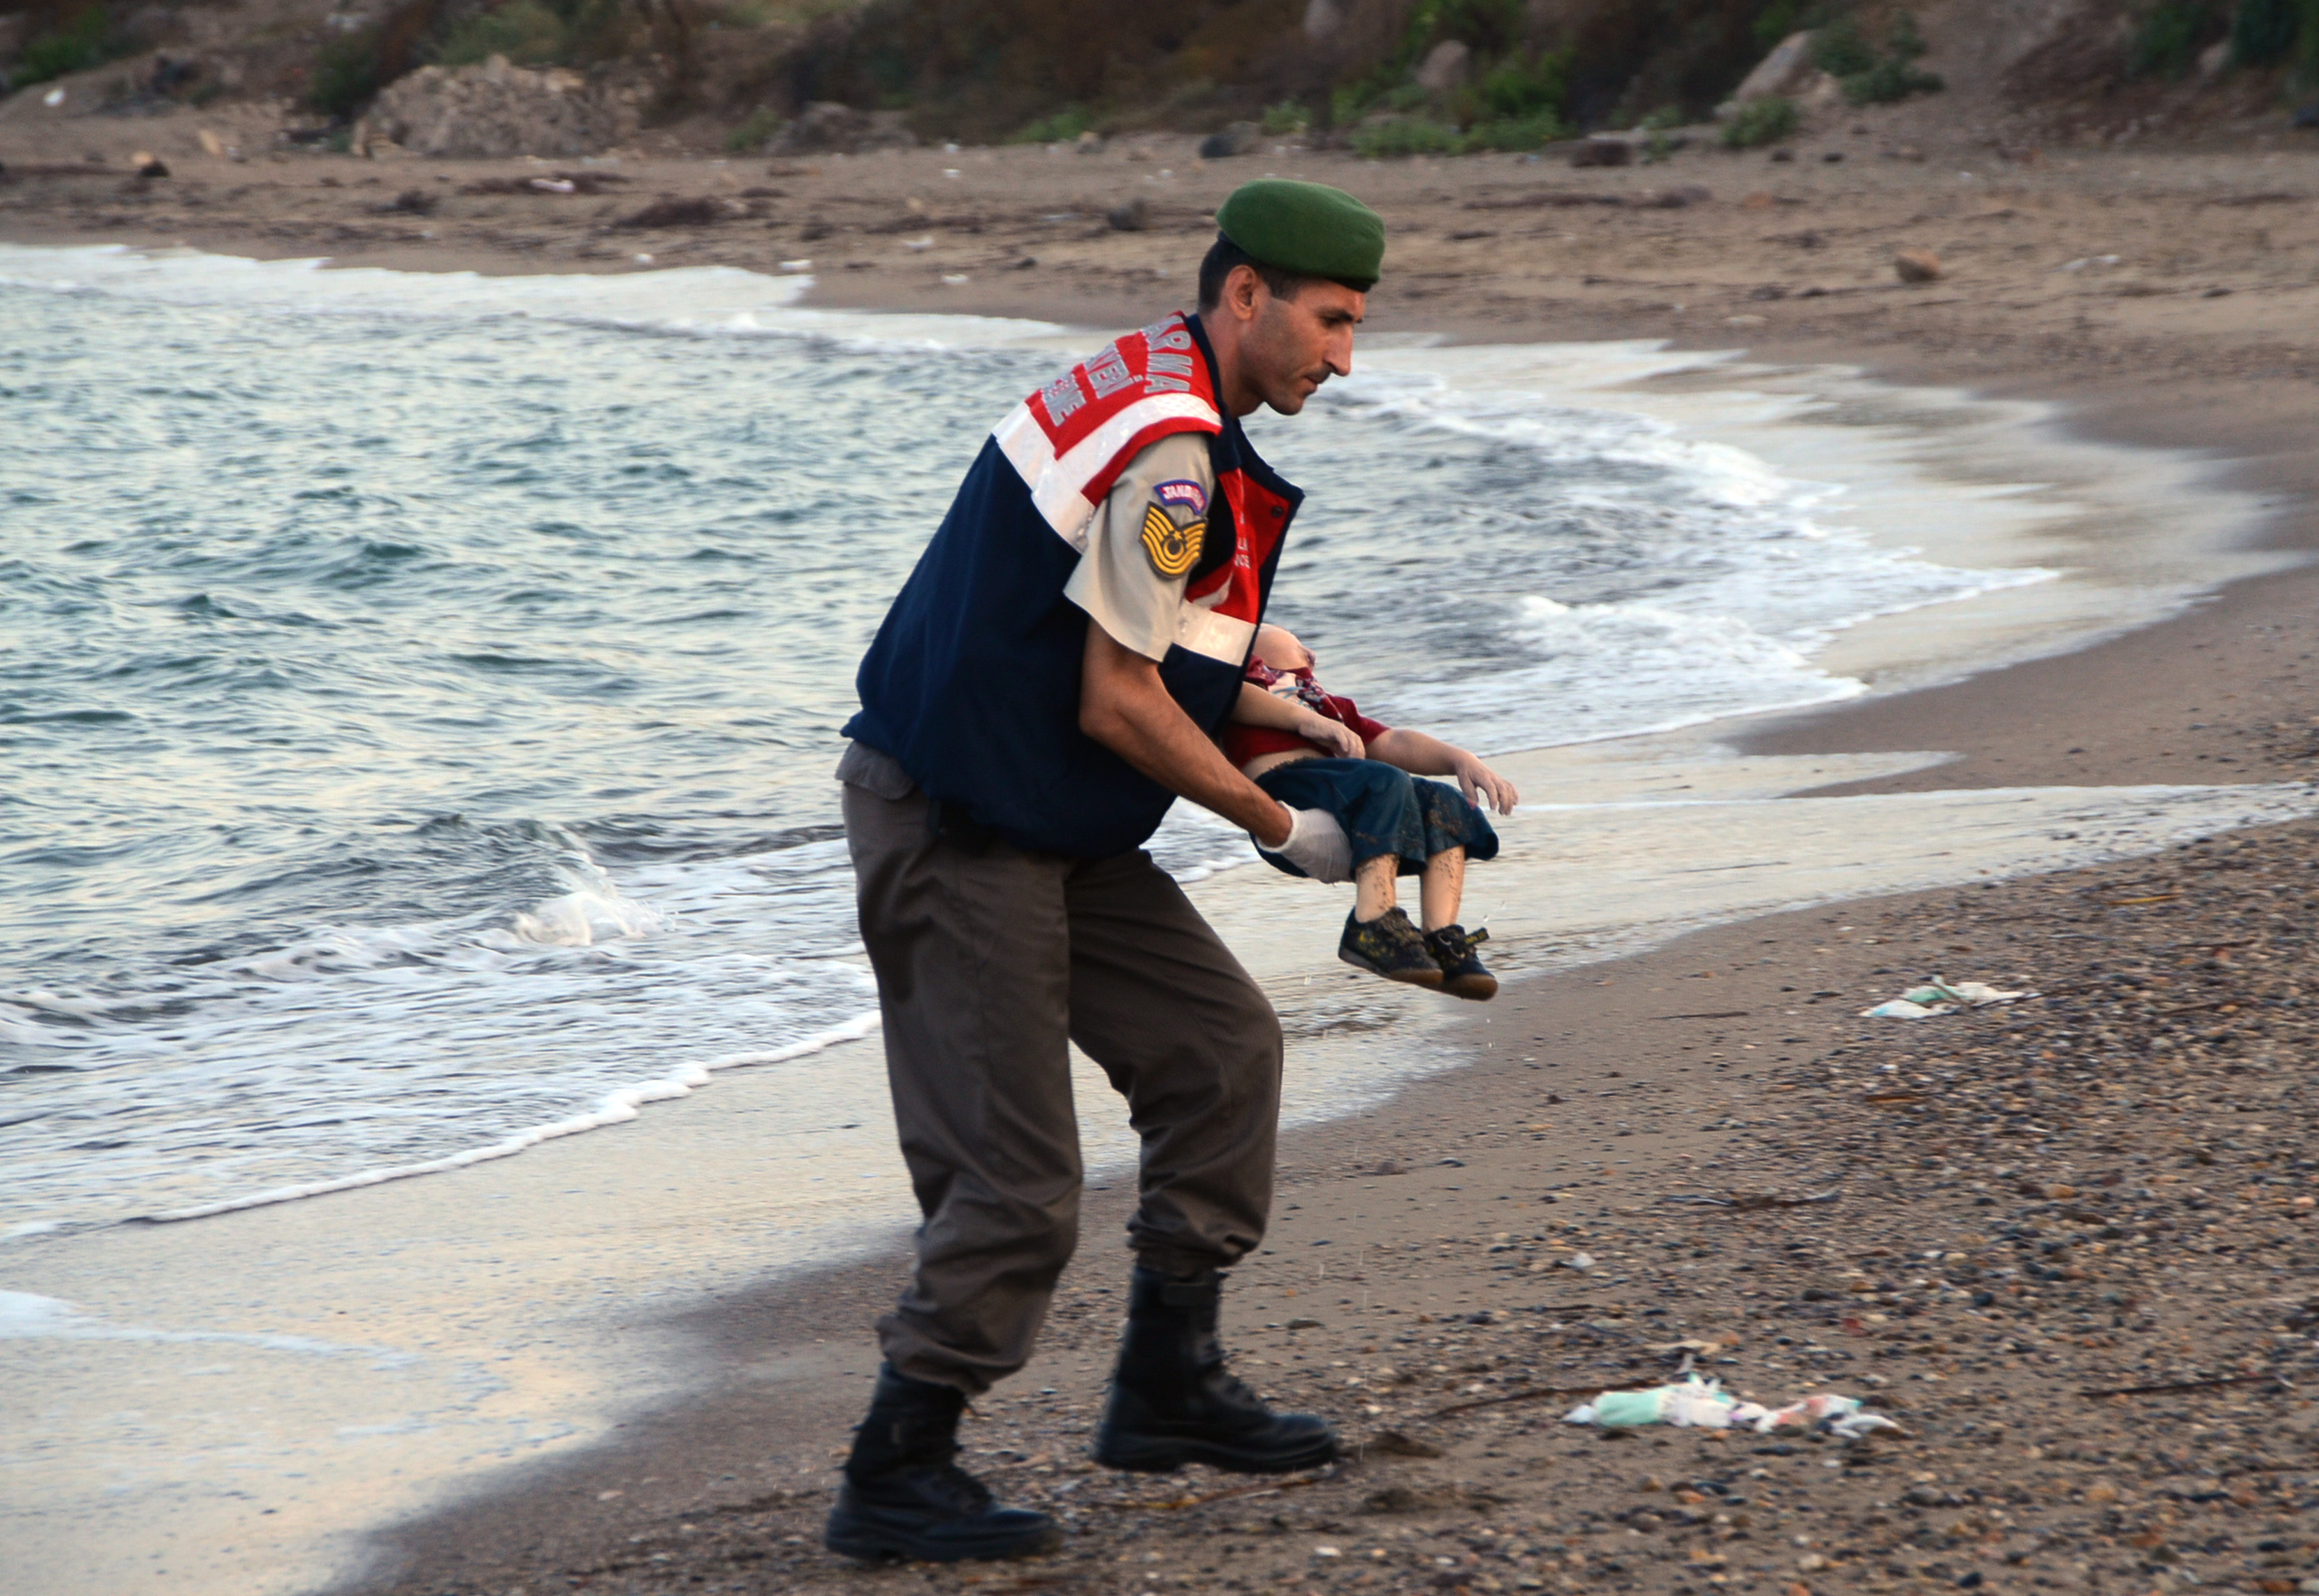 A paramilitary police officer carries the lifeless body of an unidentified migrant child, lifting it from the seashore near the Turkish resort of Bodrum, Sept. 2, 2015.